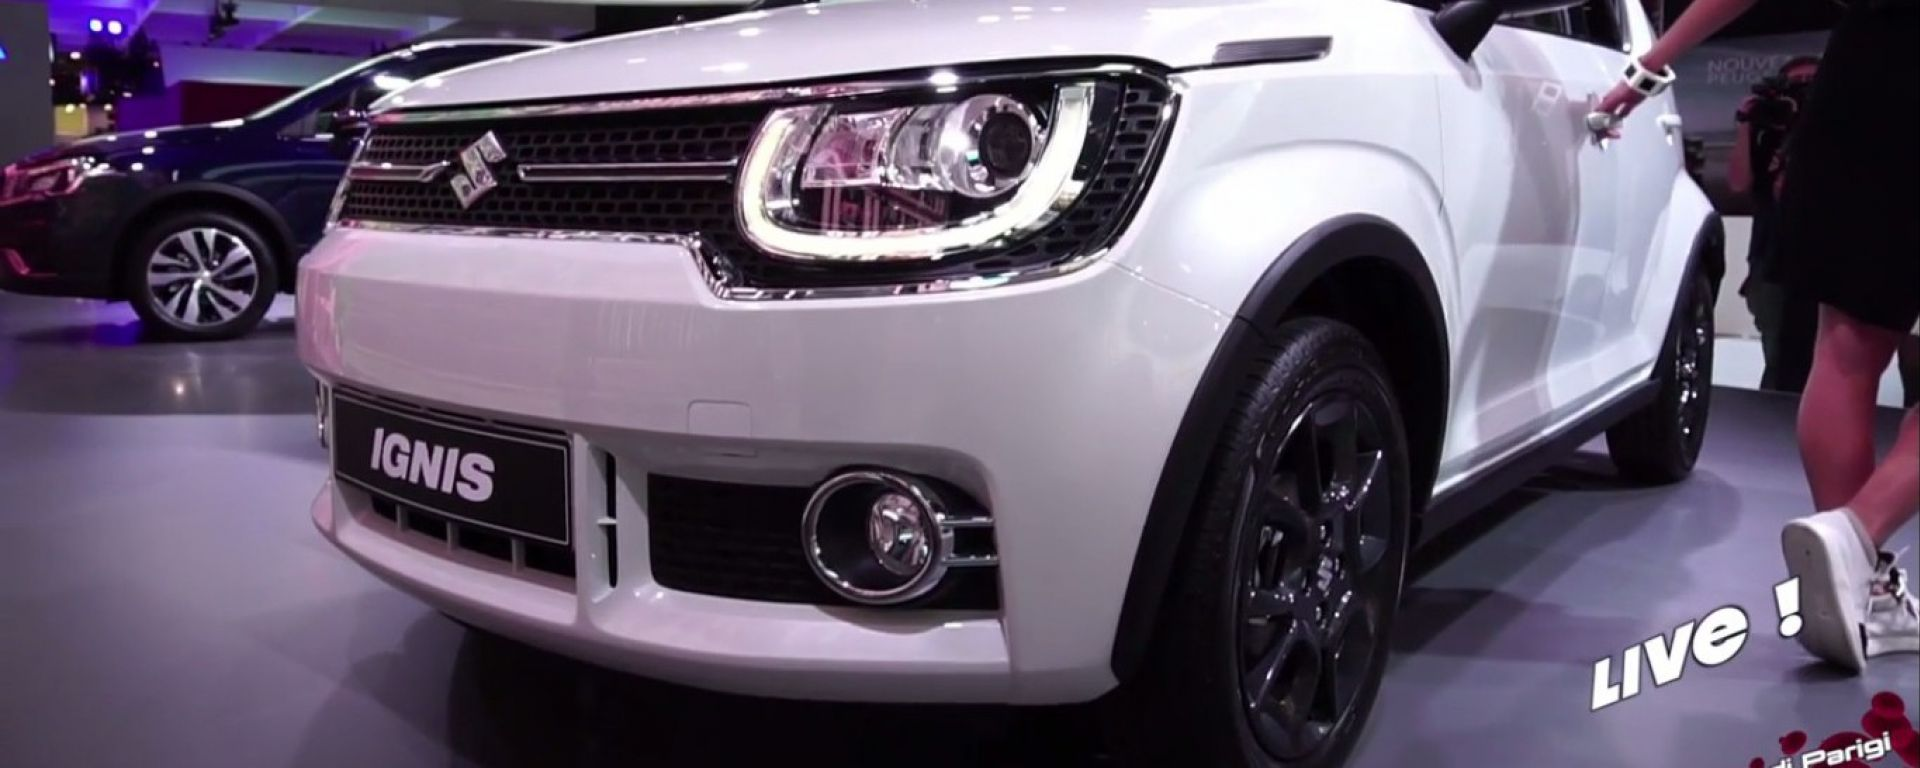 Live Parigi 2016: Suzuki Ignis 2017 in video